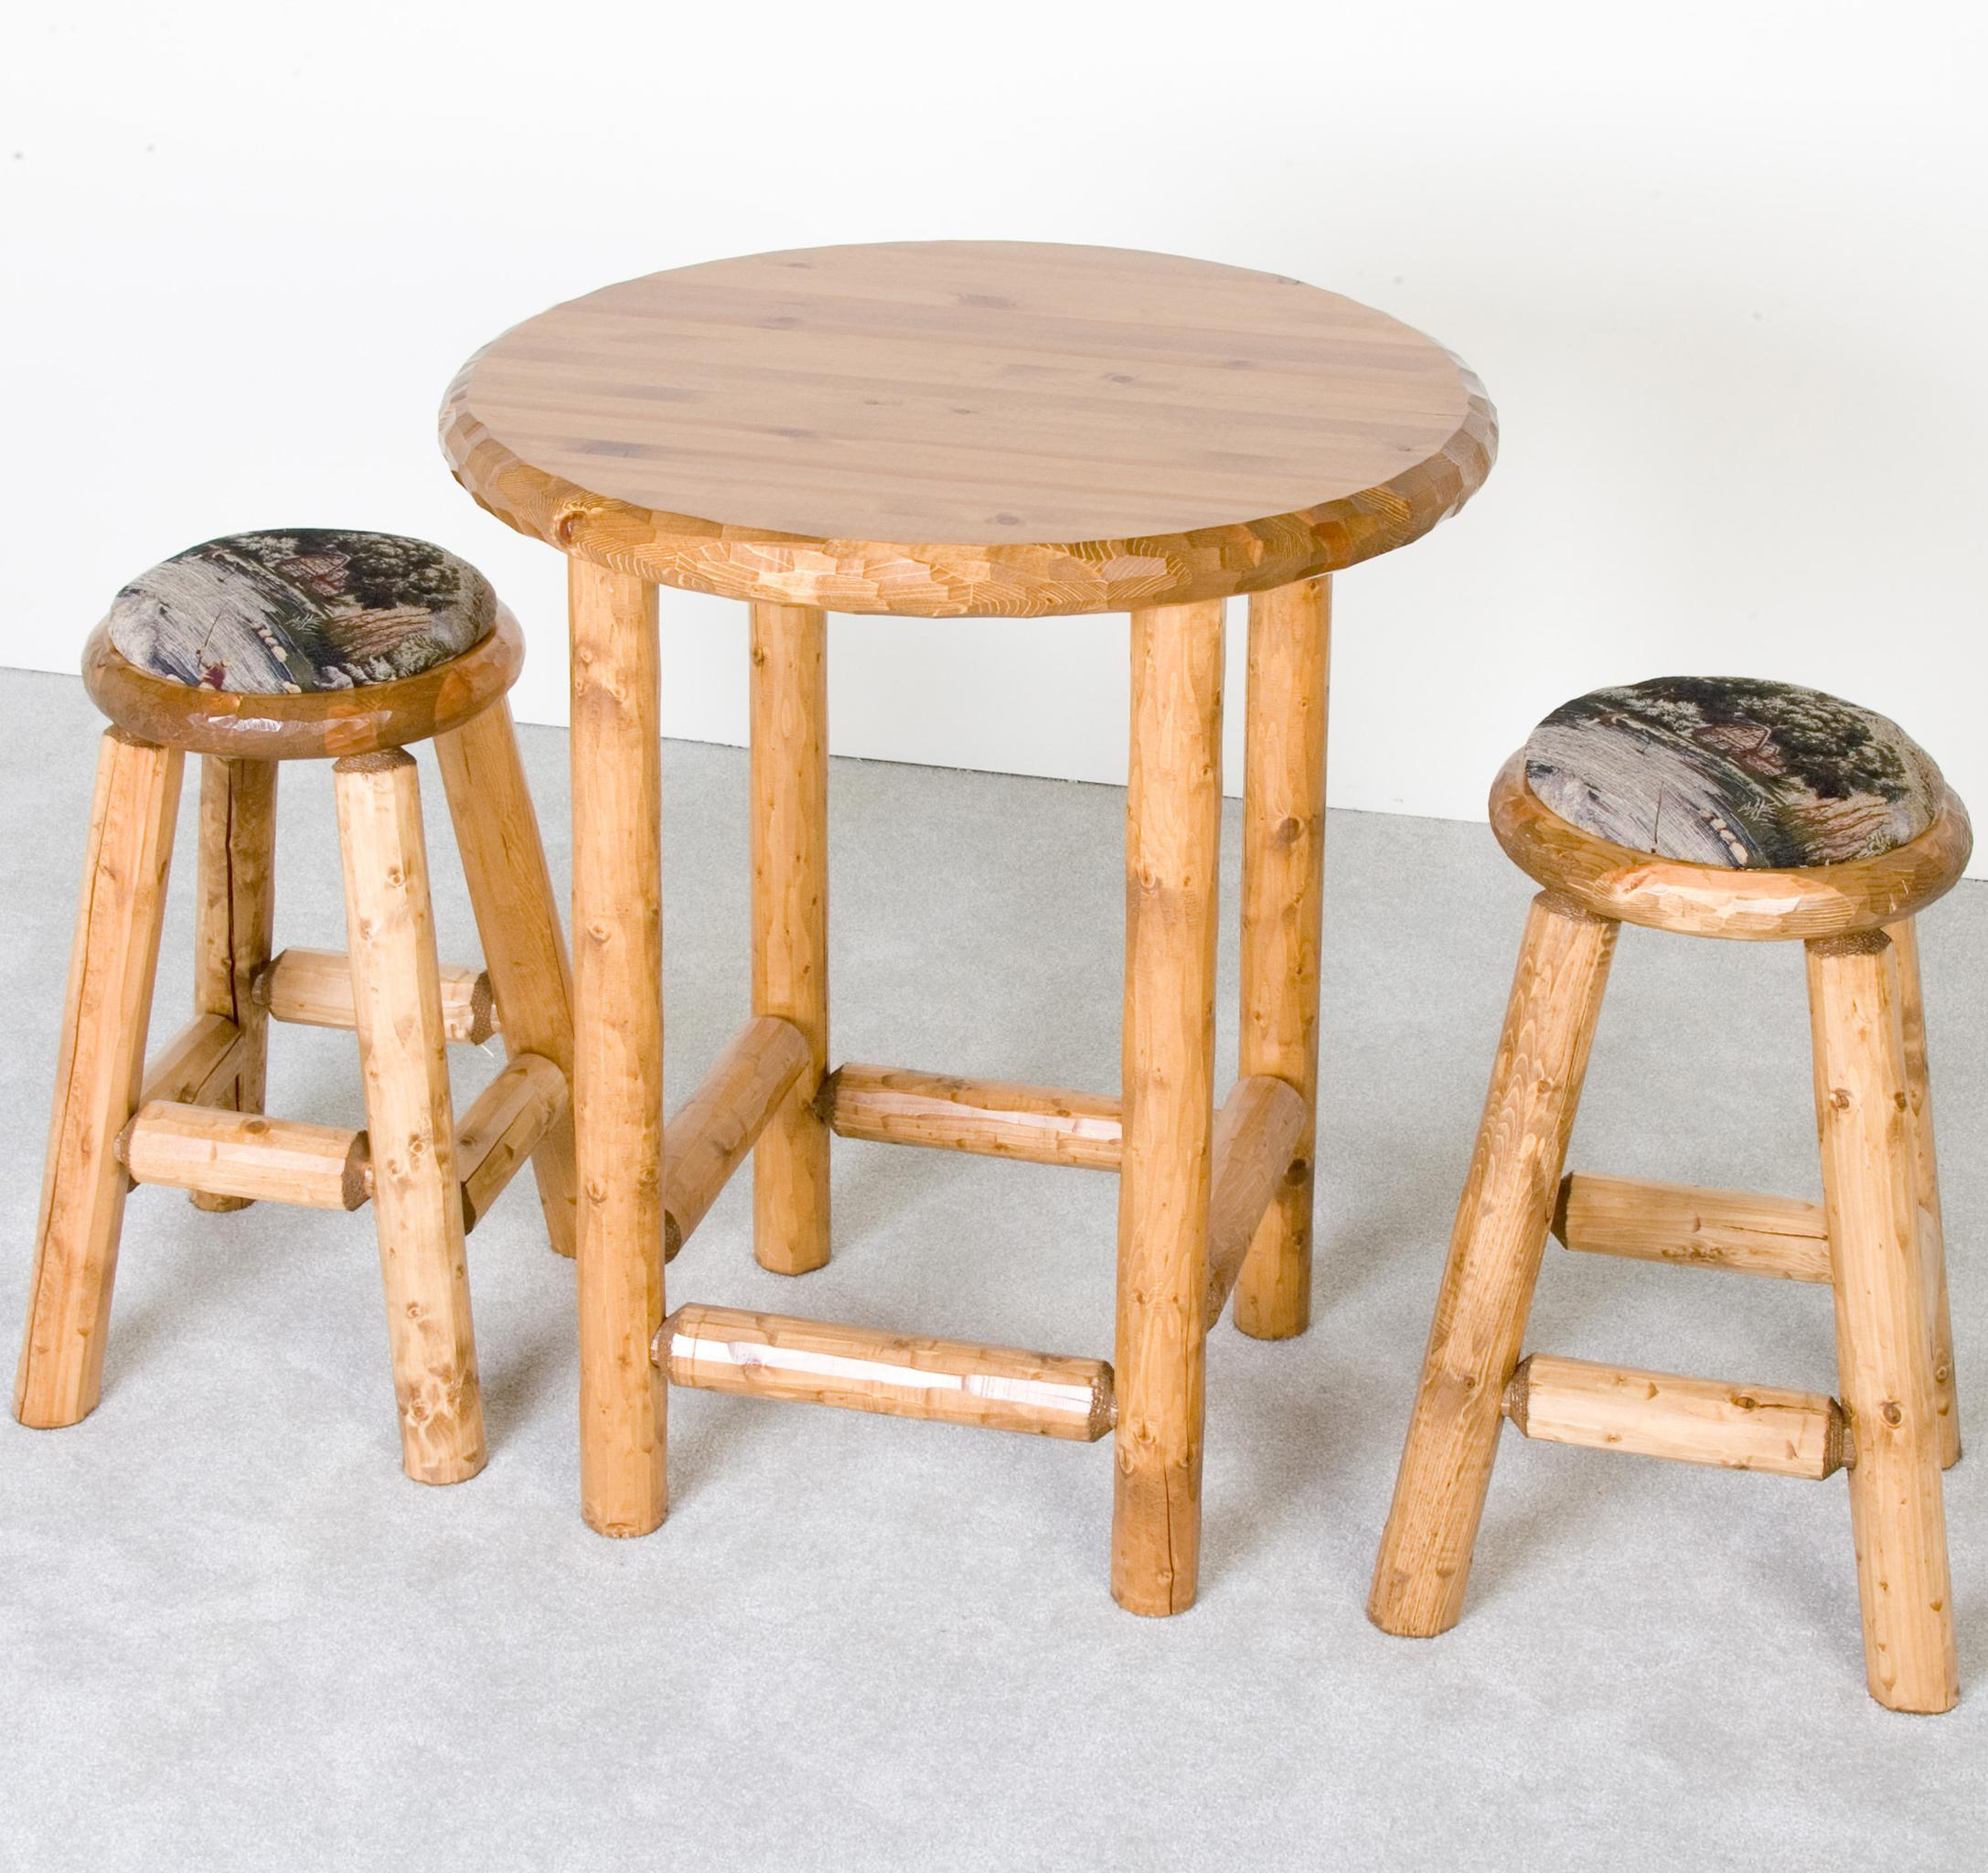 Log Furniture Rustic Pub Table and Upholstered Stools Set Becker